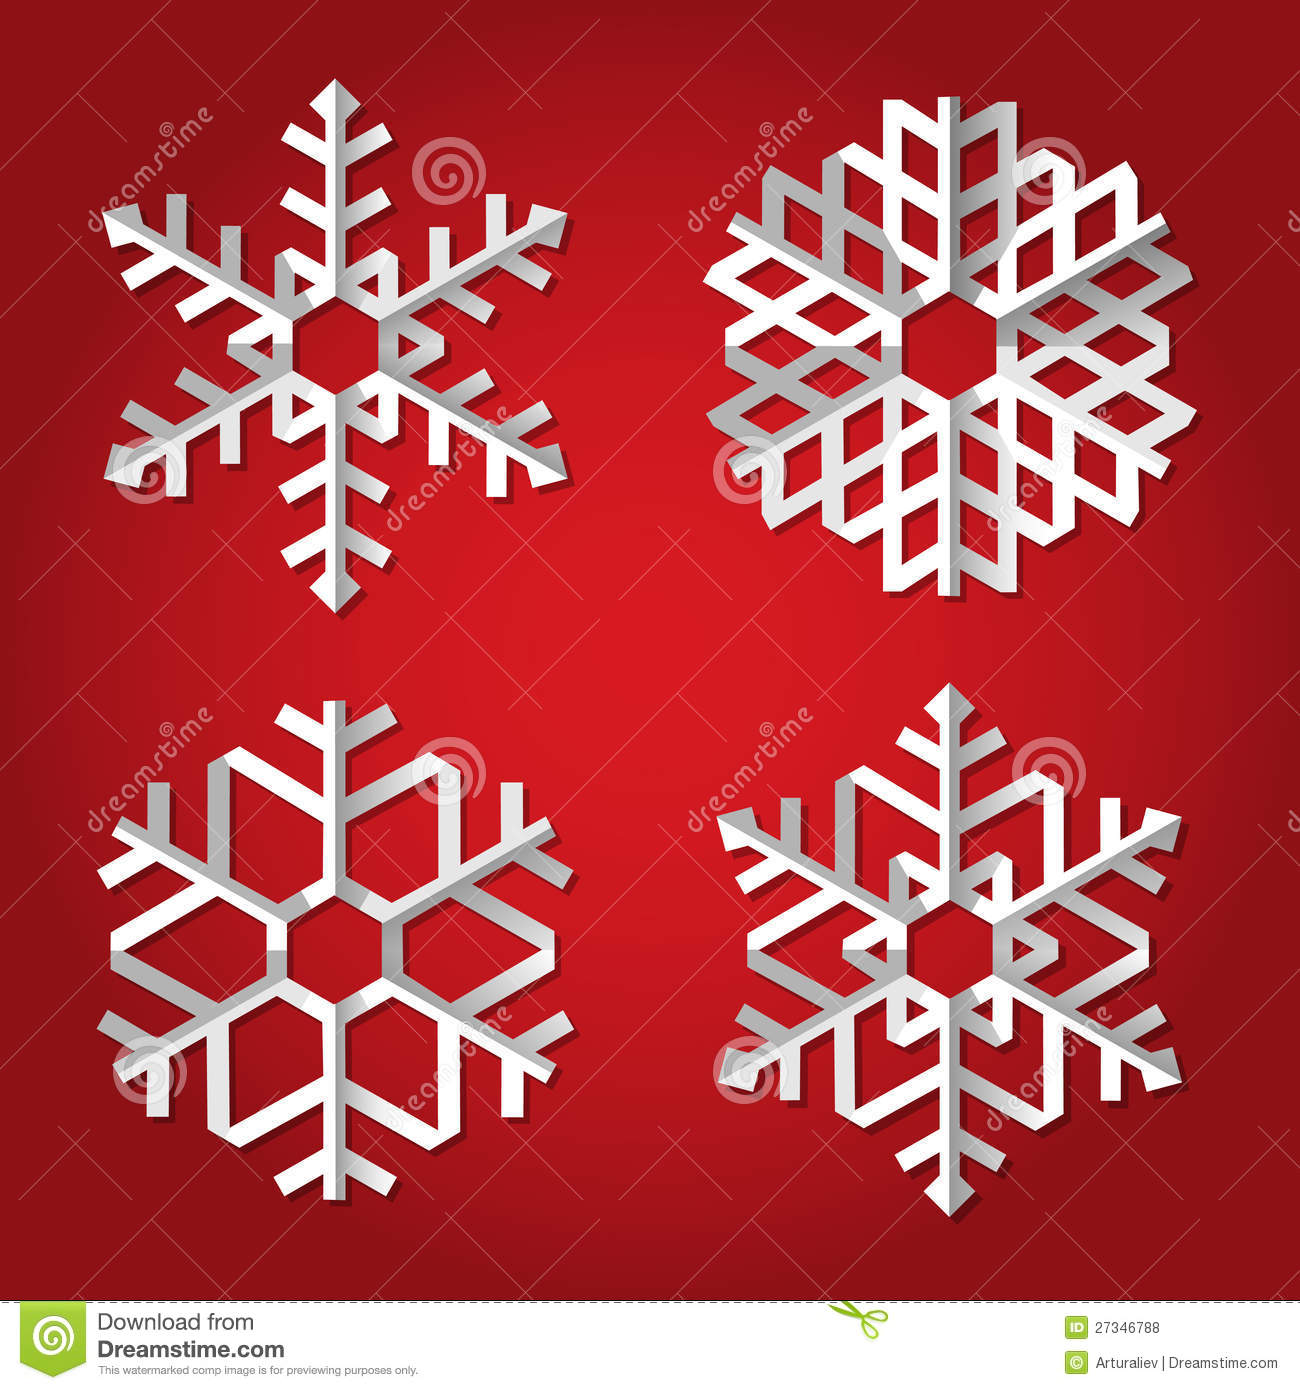 Origami snowflake stock photo Image of space pattern